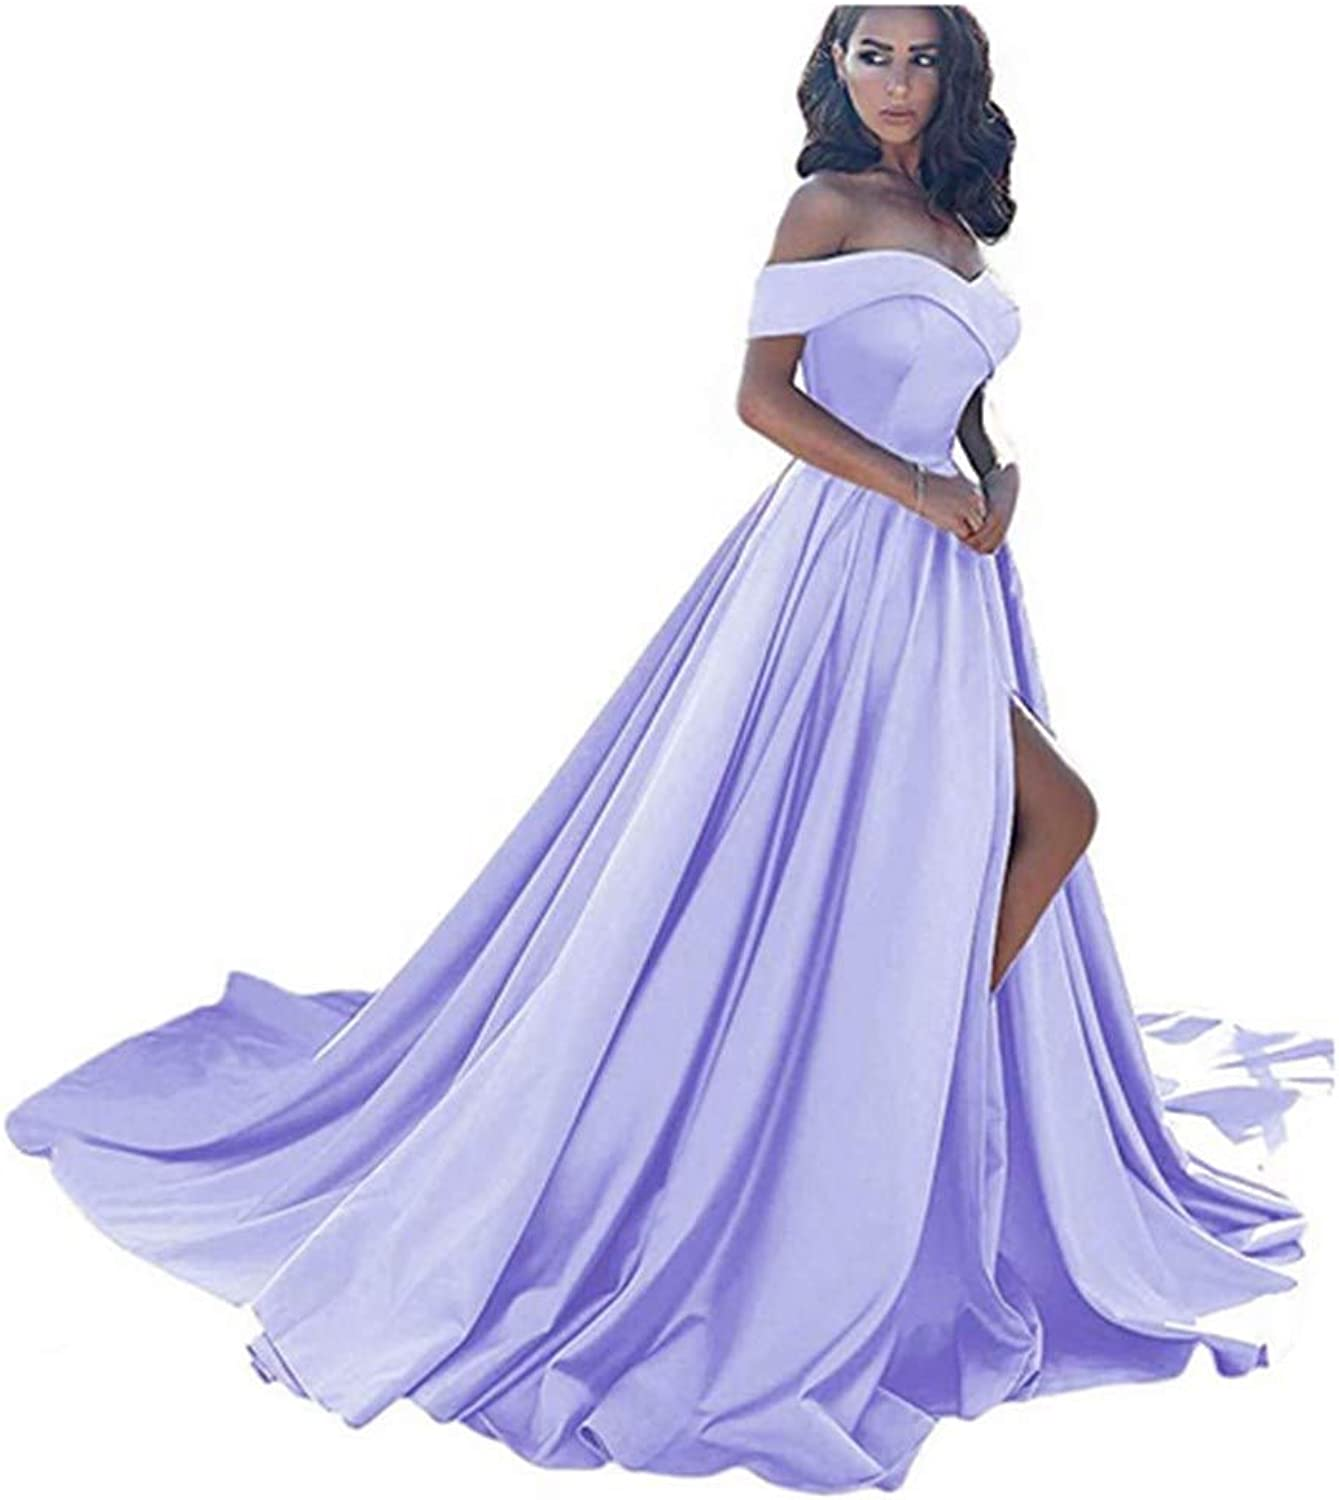 Aiyue Yishen Aline CapSleeve Evening Dress Long Slit Sexy Off The Shoulder Prom Gown